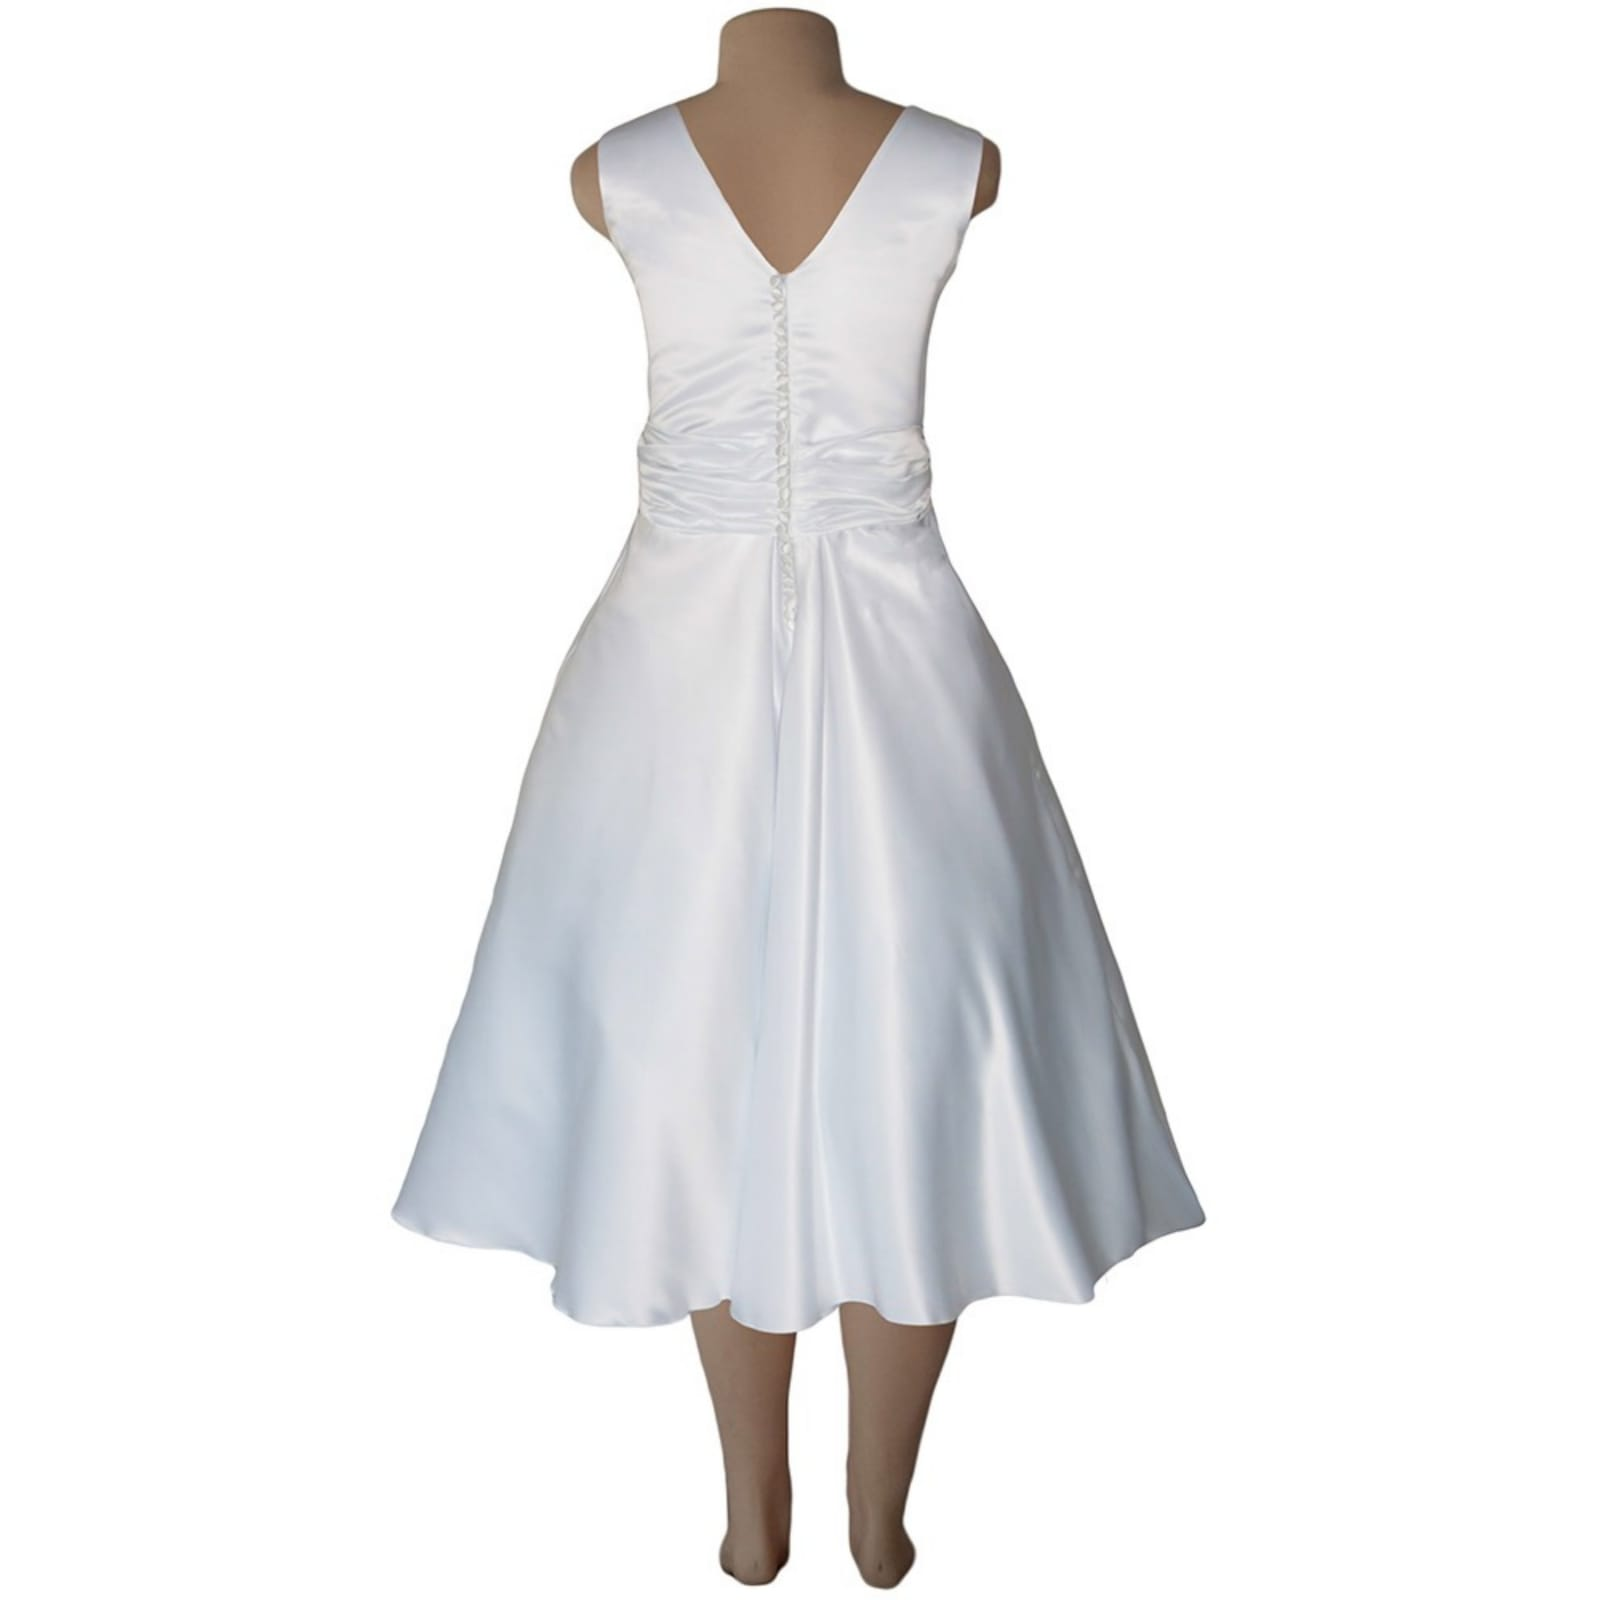 White satin 3/4 length v neck custom made wedding dress 6 white satin 3/4 length v neck custom made wedding dress, with a cross bust effect, with a ruched belt detailed with silver bling. Back detailed with buttons. With a 3/4 sleeve rounded white bolero.